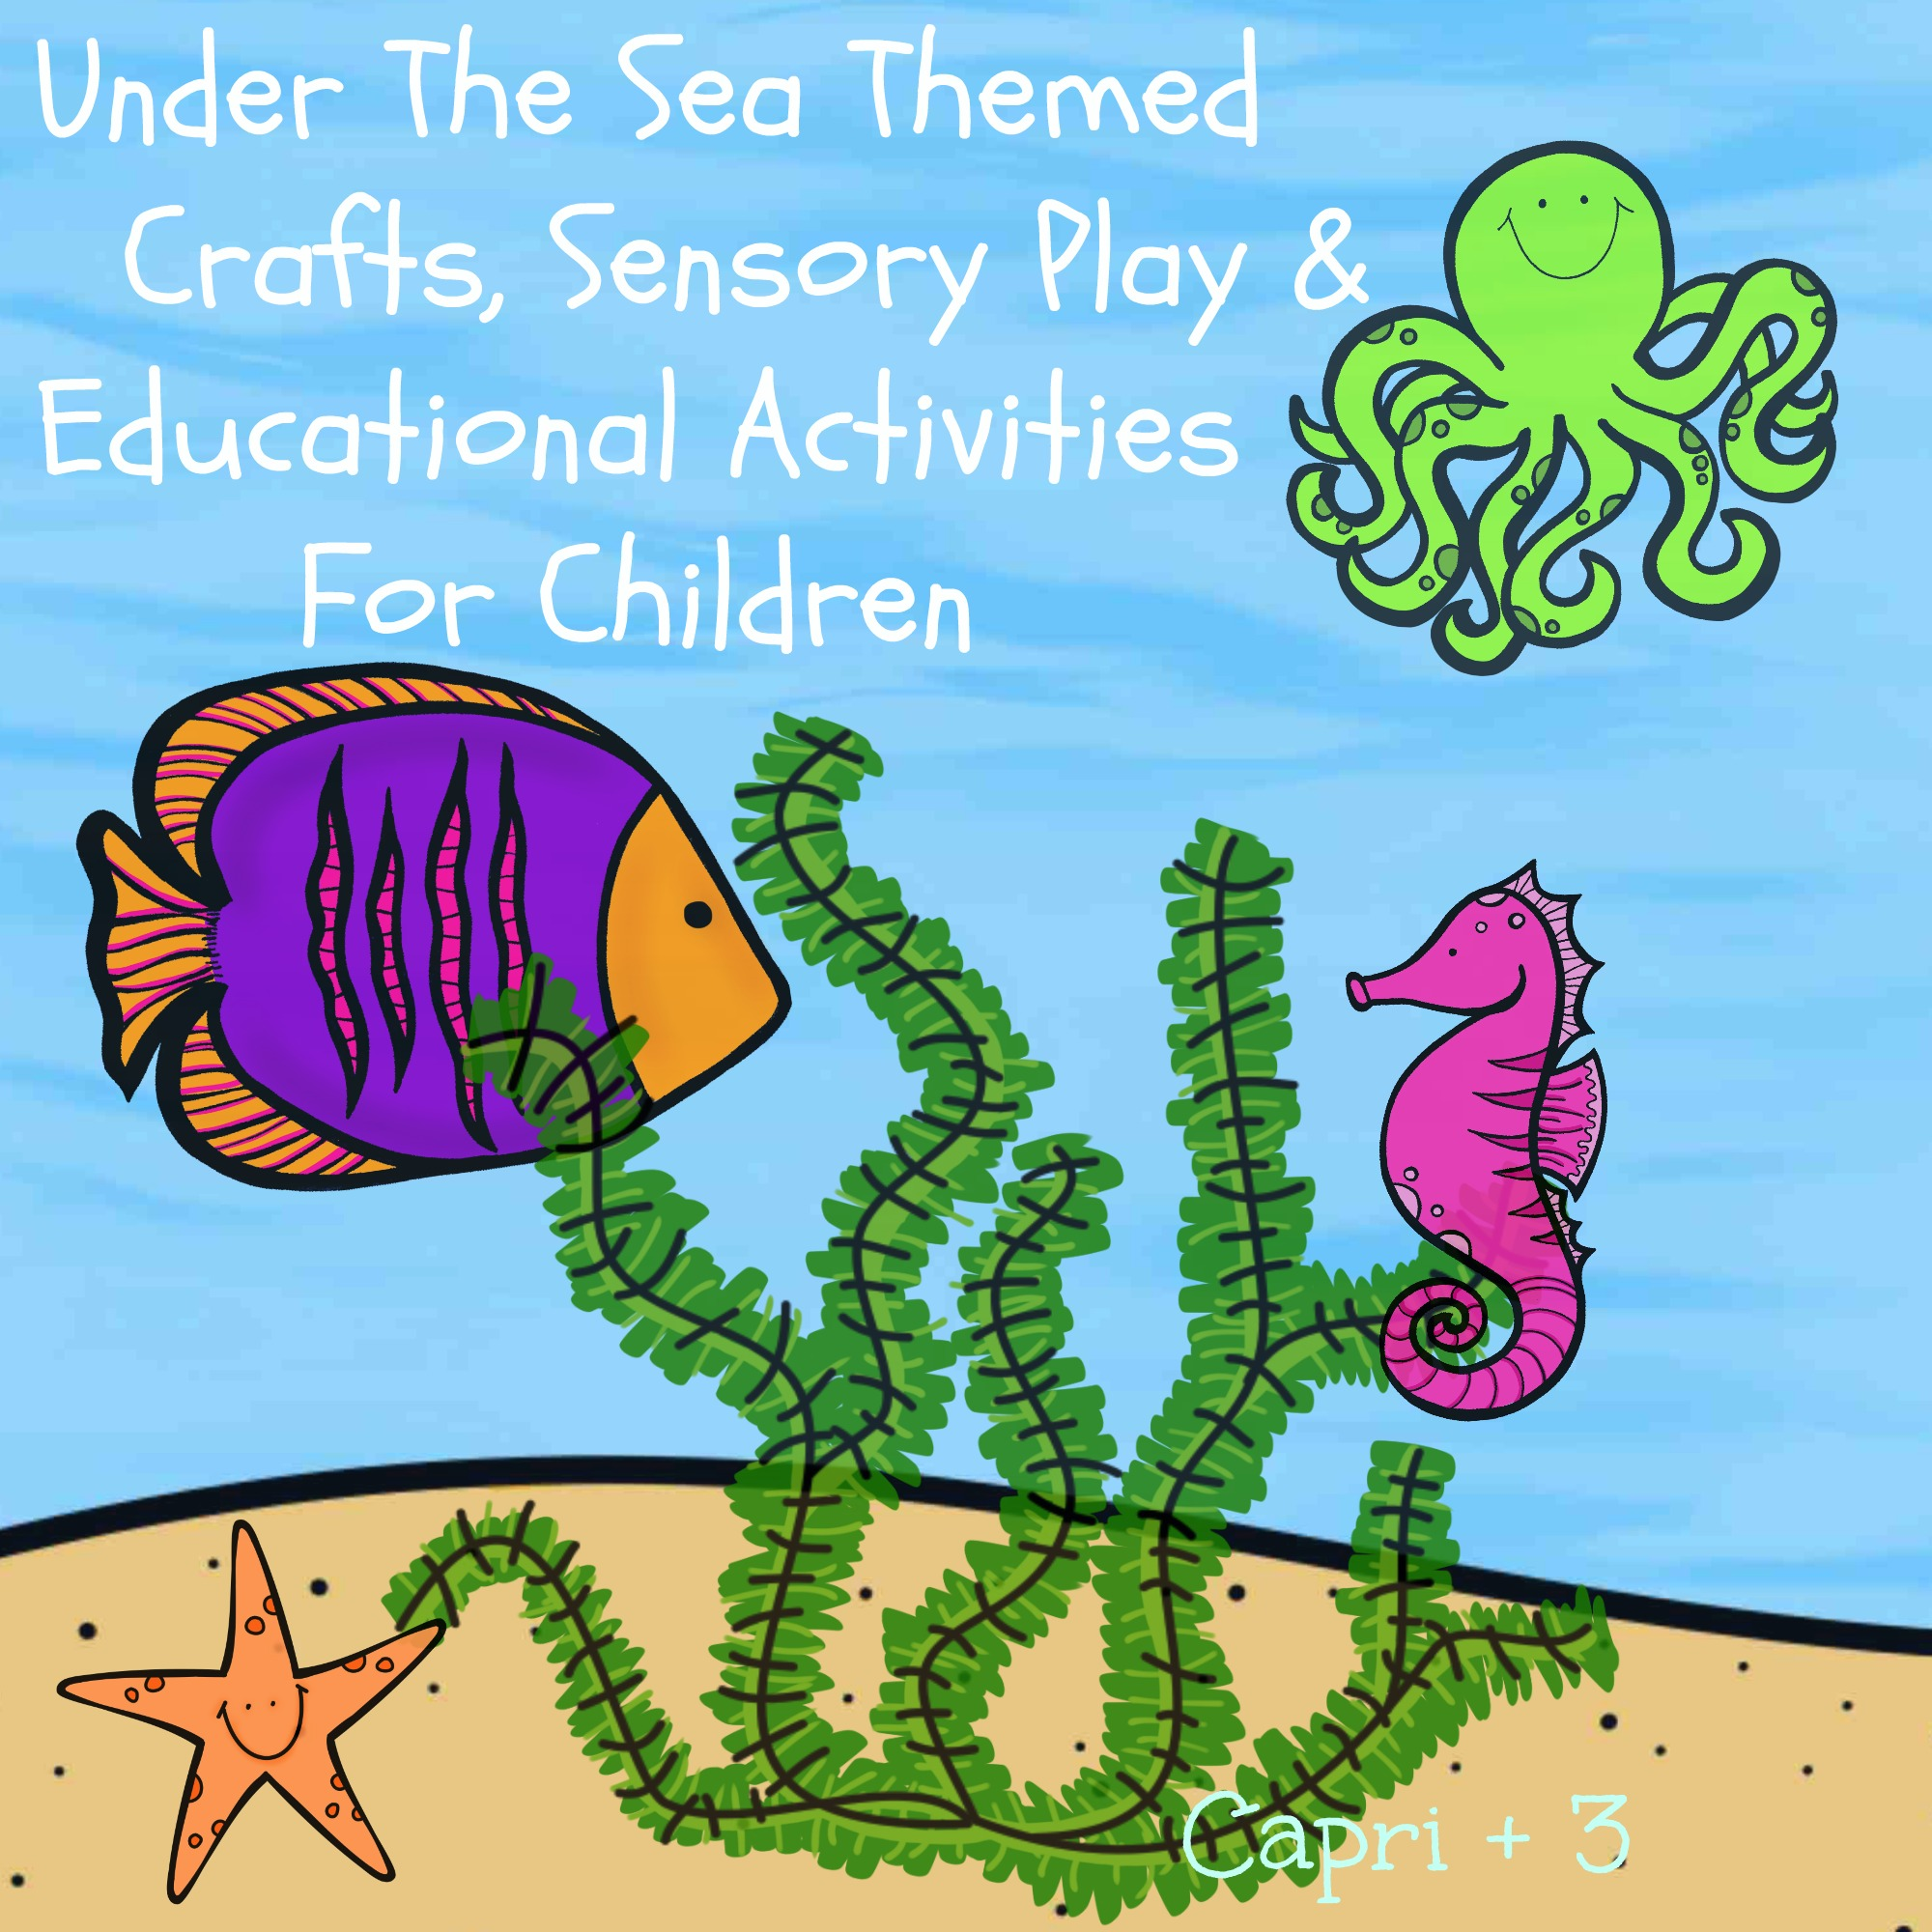 Under The Sea Themed Crafts, Sensory Play & Educational Activities for Children